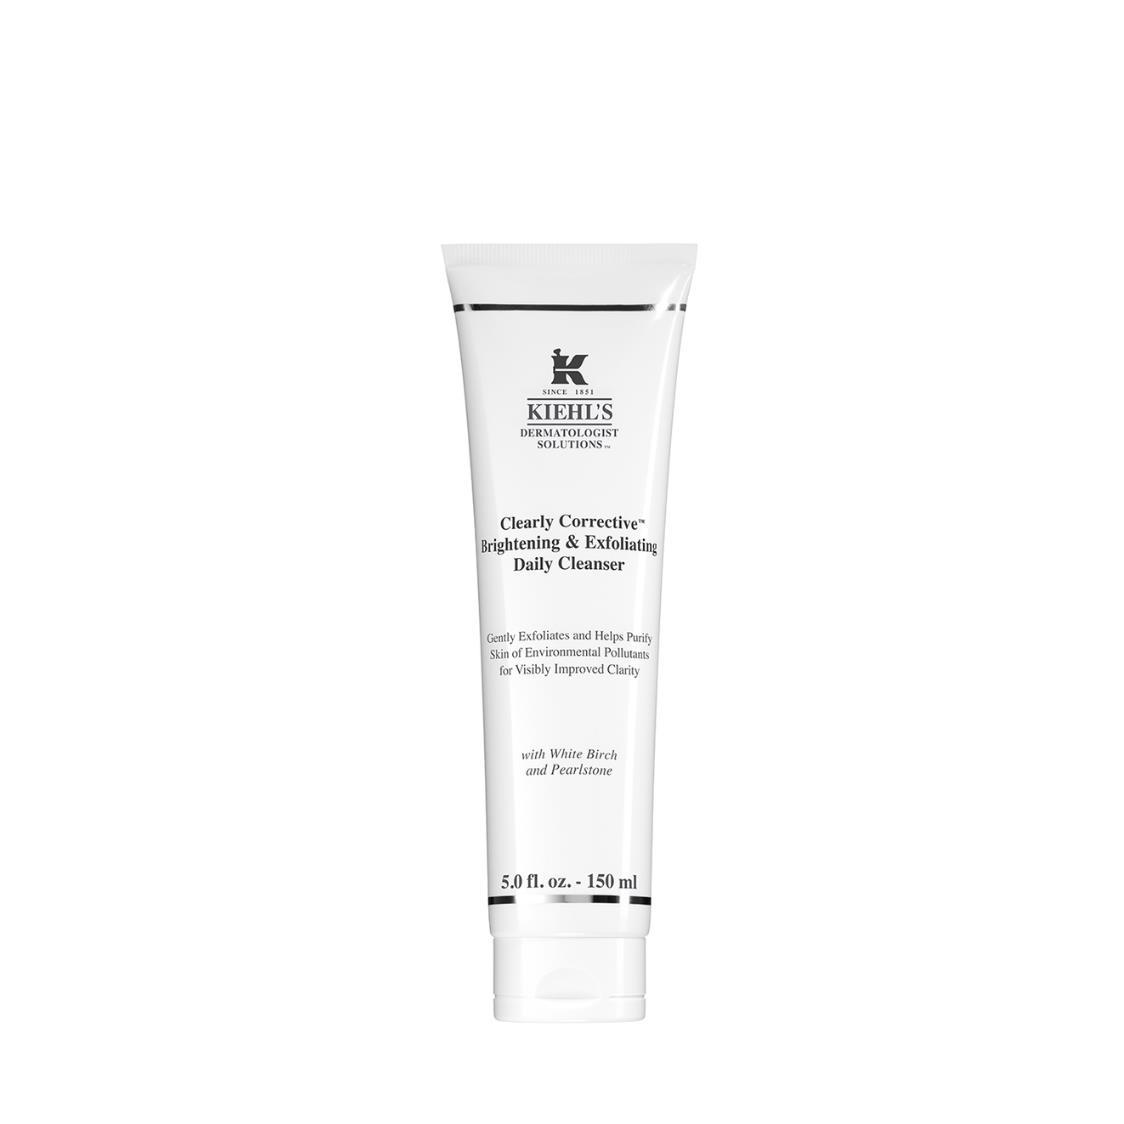 Clearly Corrective Brightening  Exfoliating Daily Cleanser